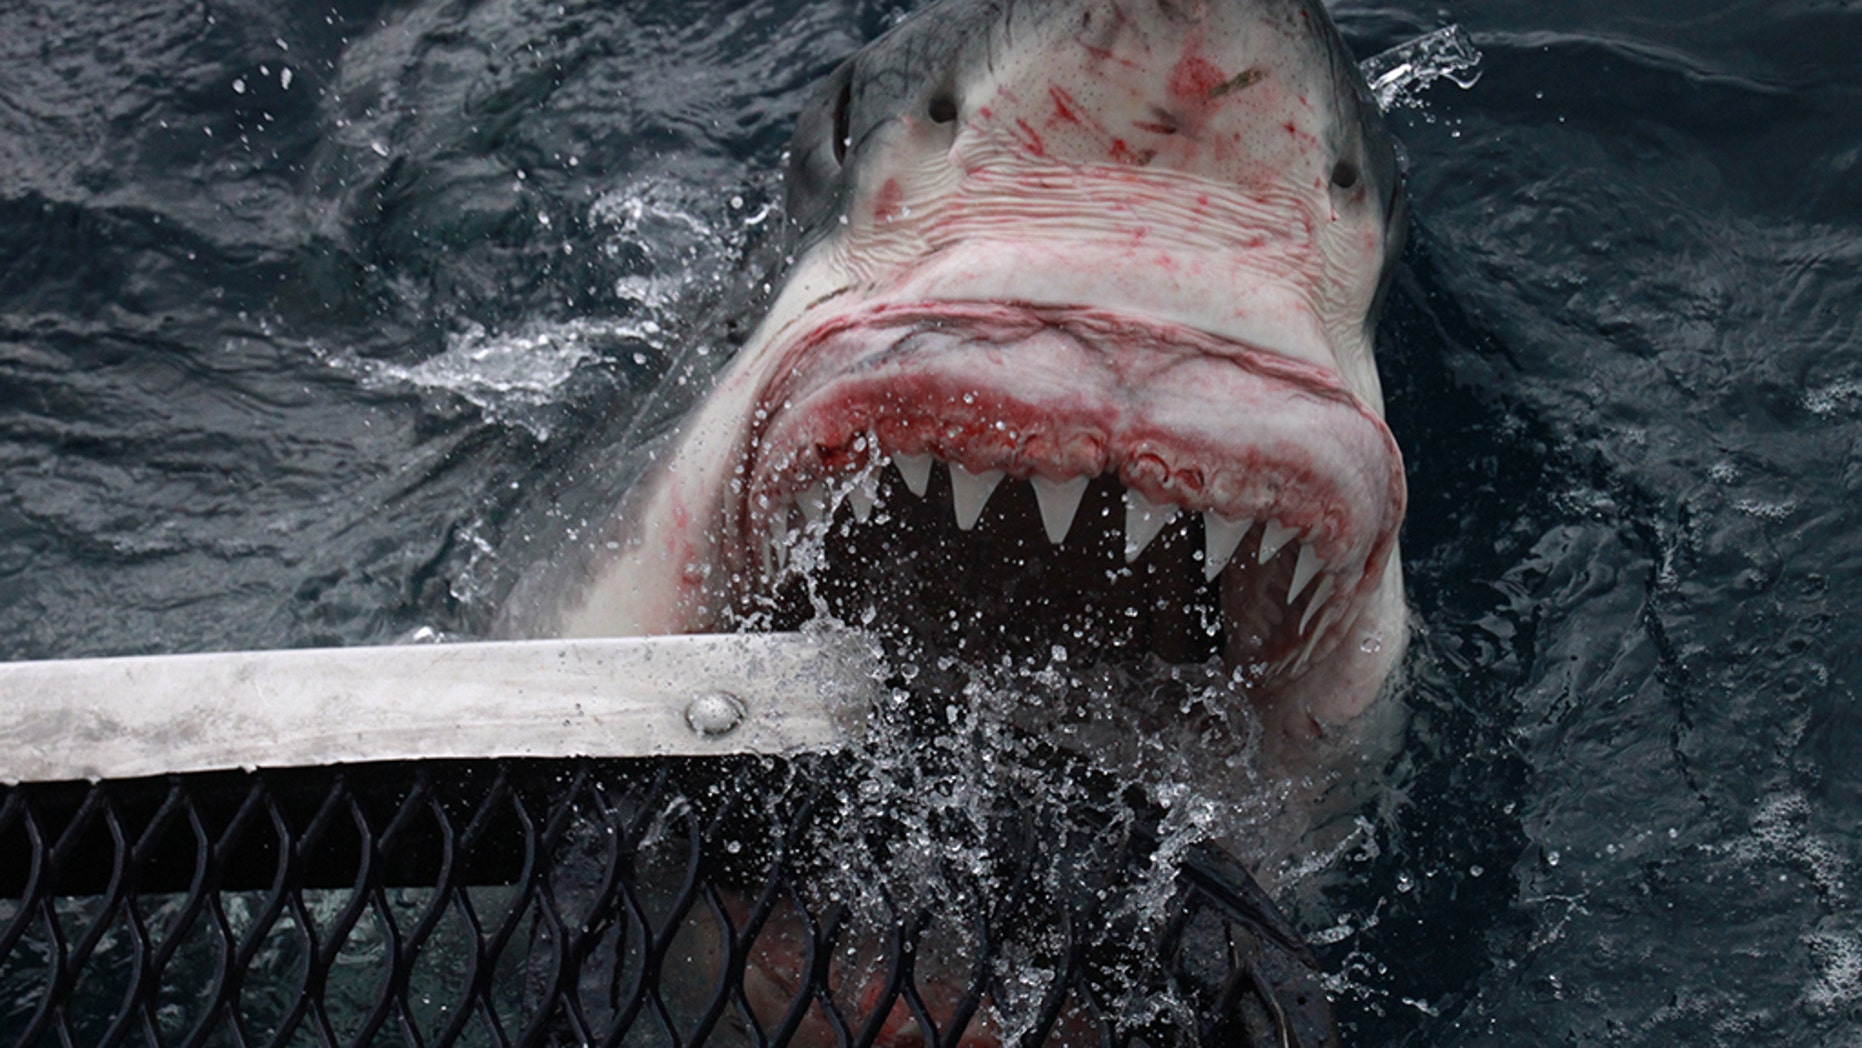 The shark lunges from the water to bite the cage. STUNNING pictures have captured the moment a huge great white shark came within inches of a photographer's hand as he tried to get the best shot. (Credit: Australscope/Media Drum World)